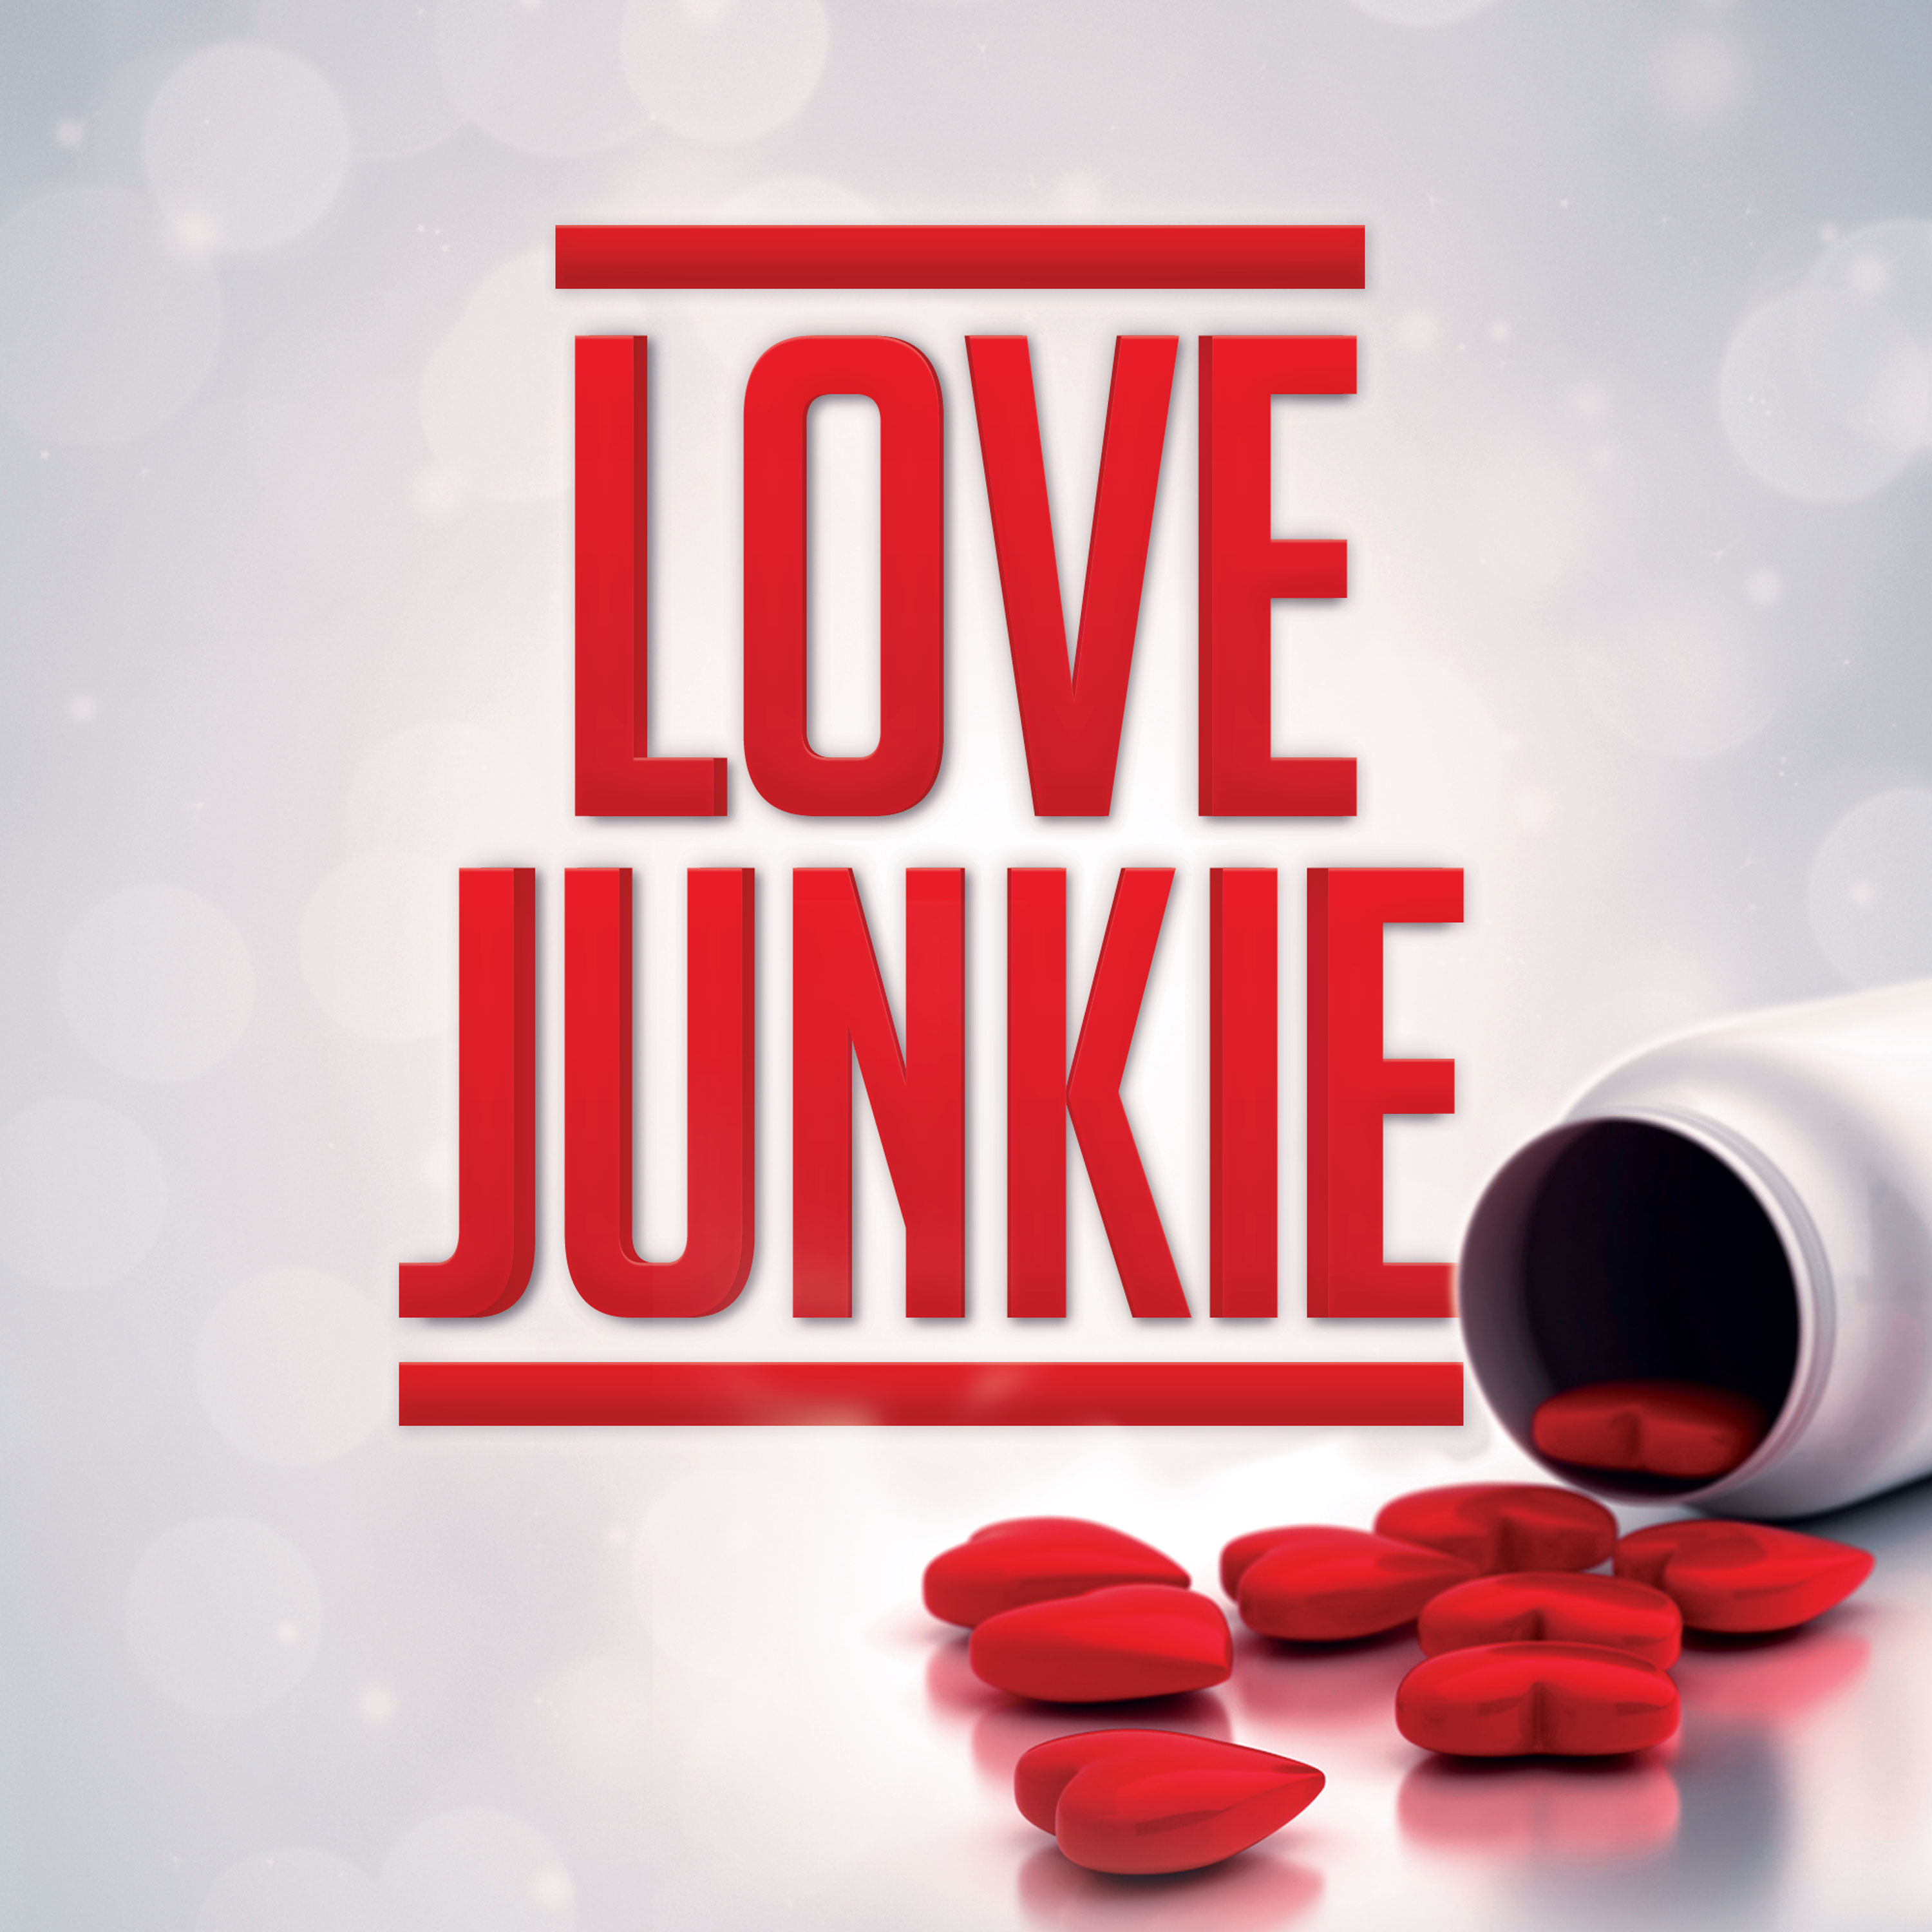 Love Junkie: Help for the Relationship Obsessed, Love Addicted, & Codependent - Episode #16: Building Self Compassion with Sarah Suzuki